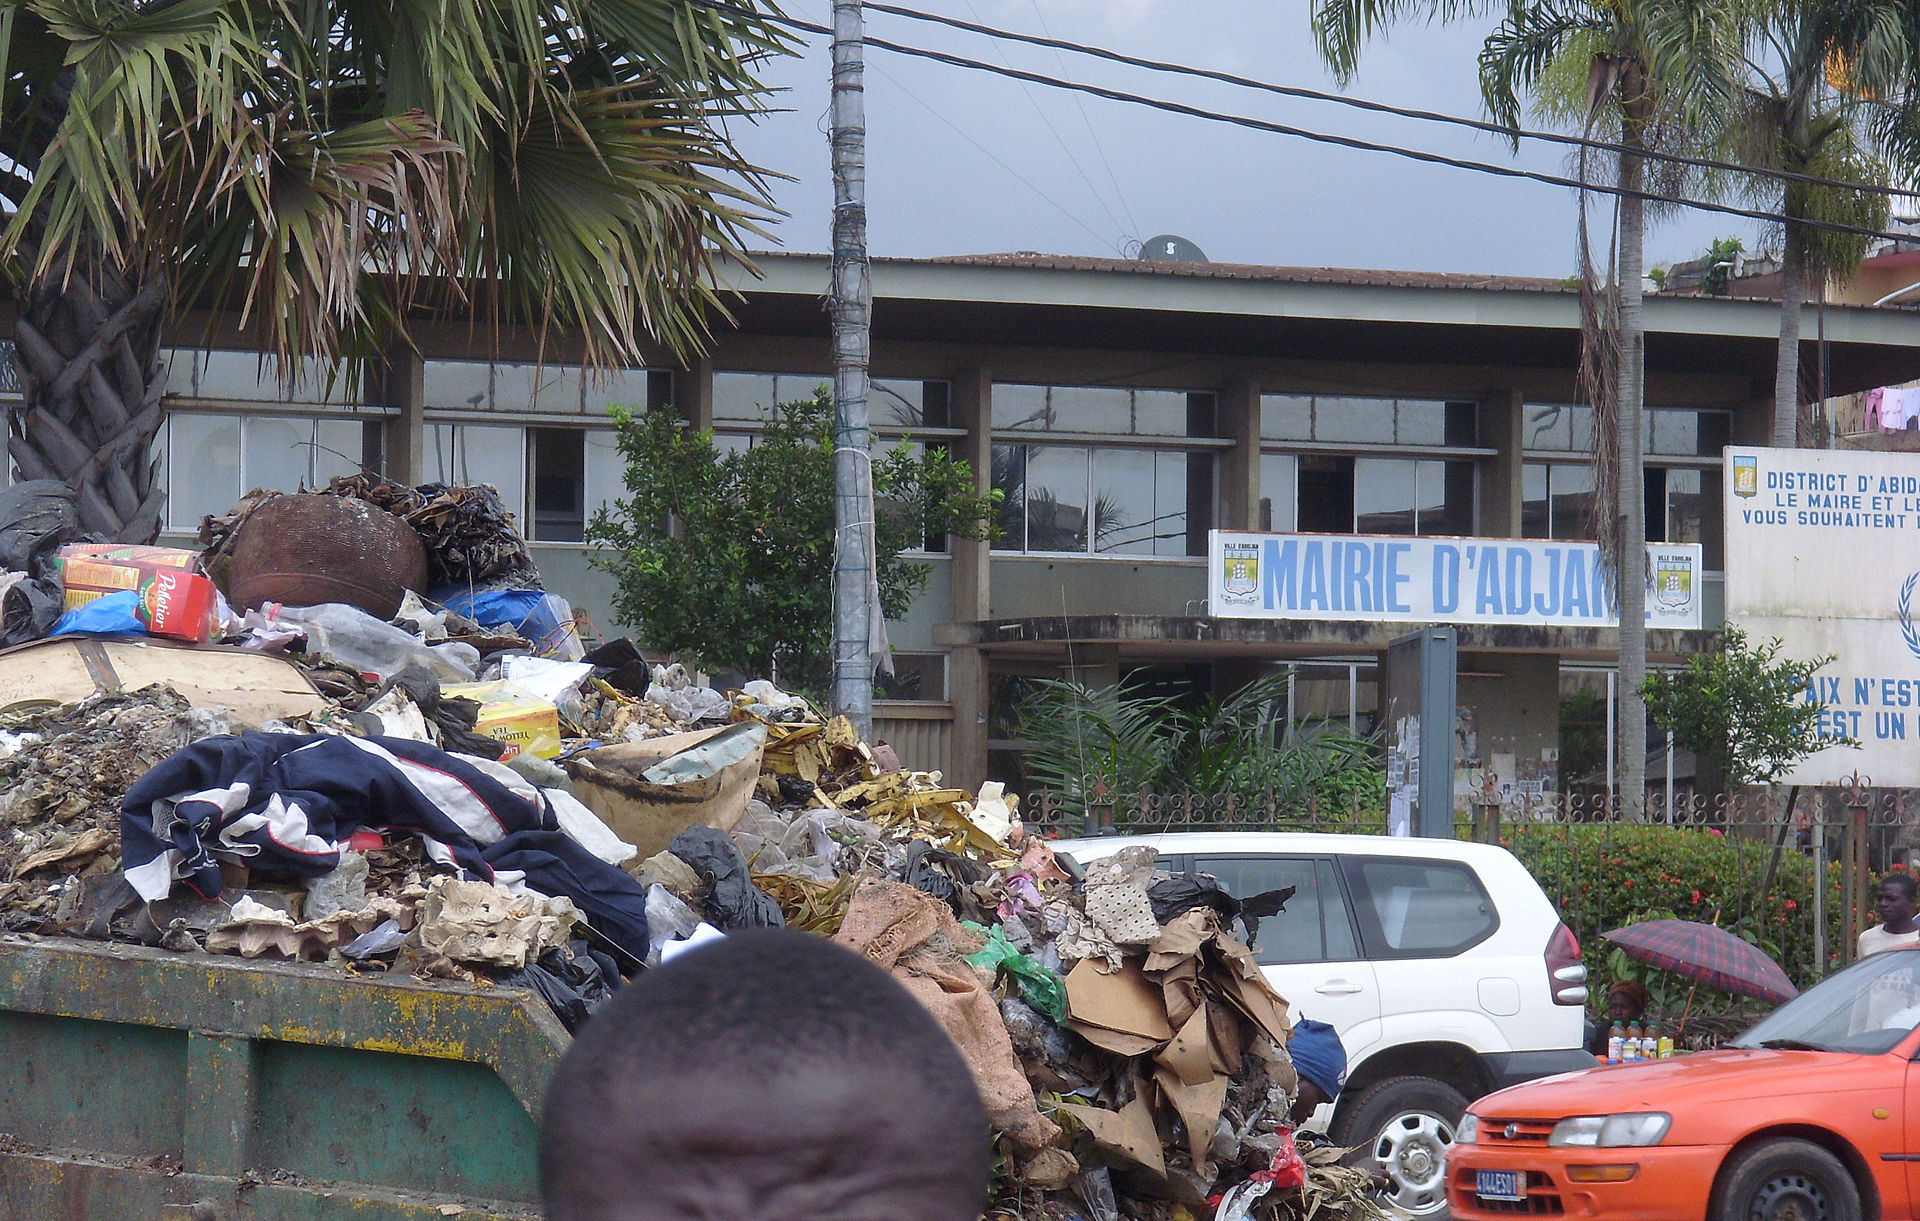 Contractor S 2006 Ivory Coast Toxic Waste Dump - Wikipedia